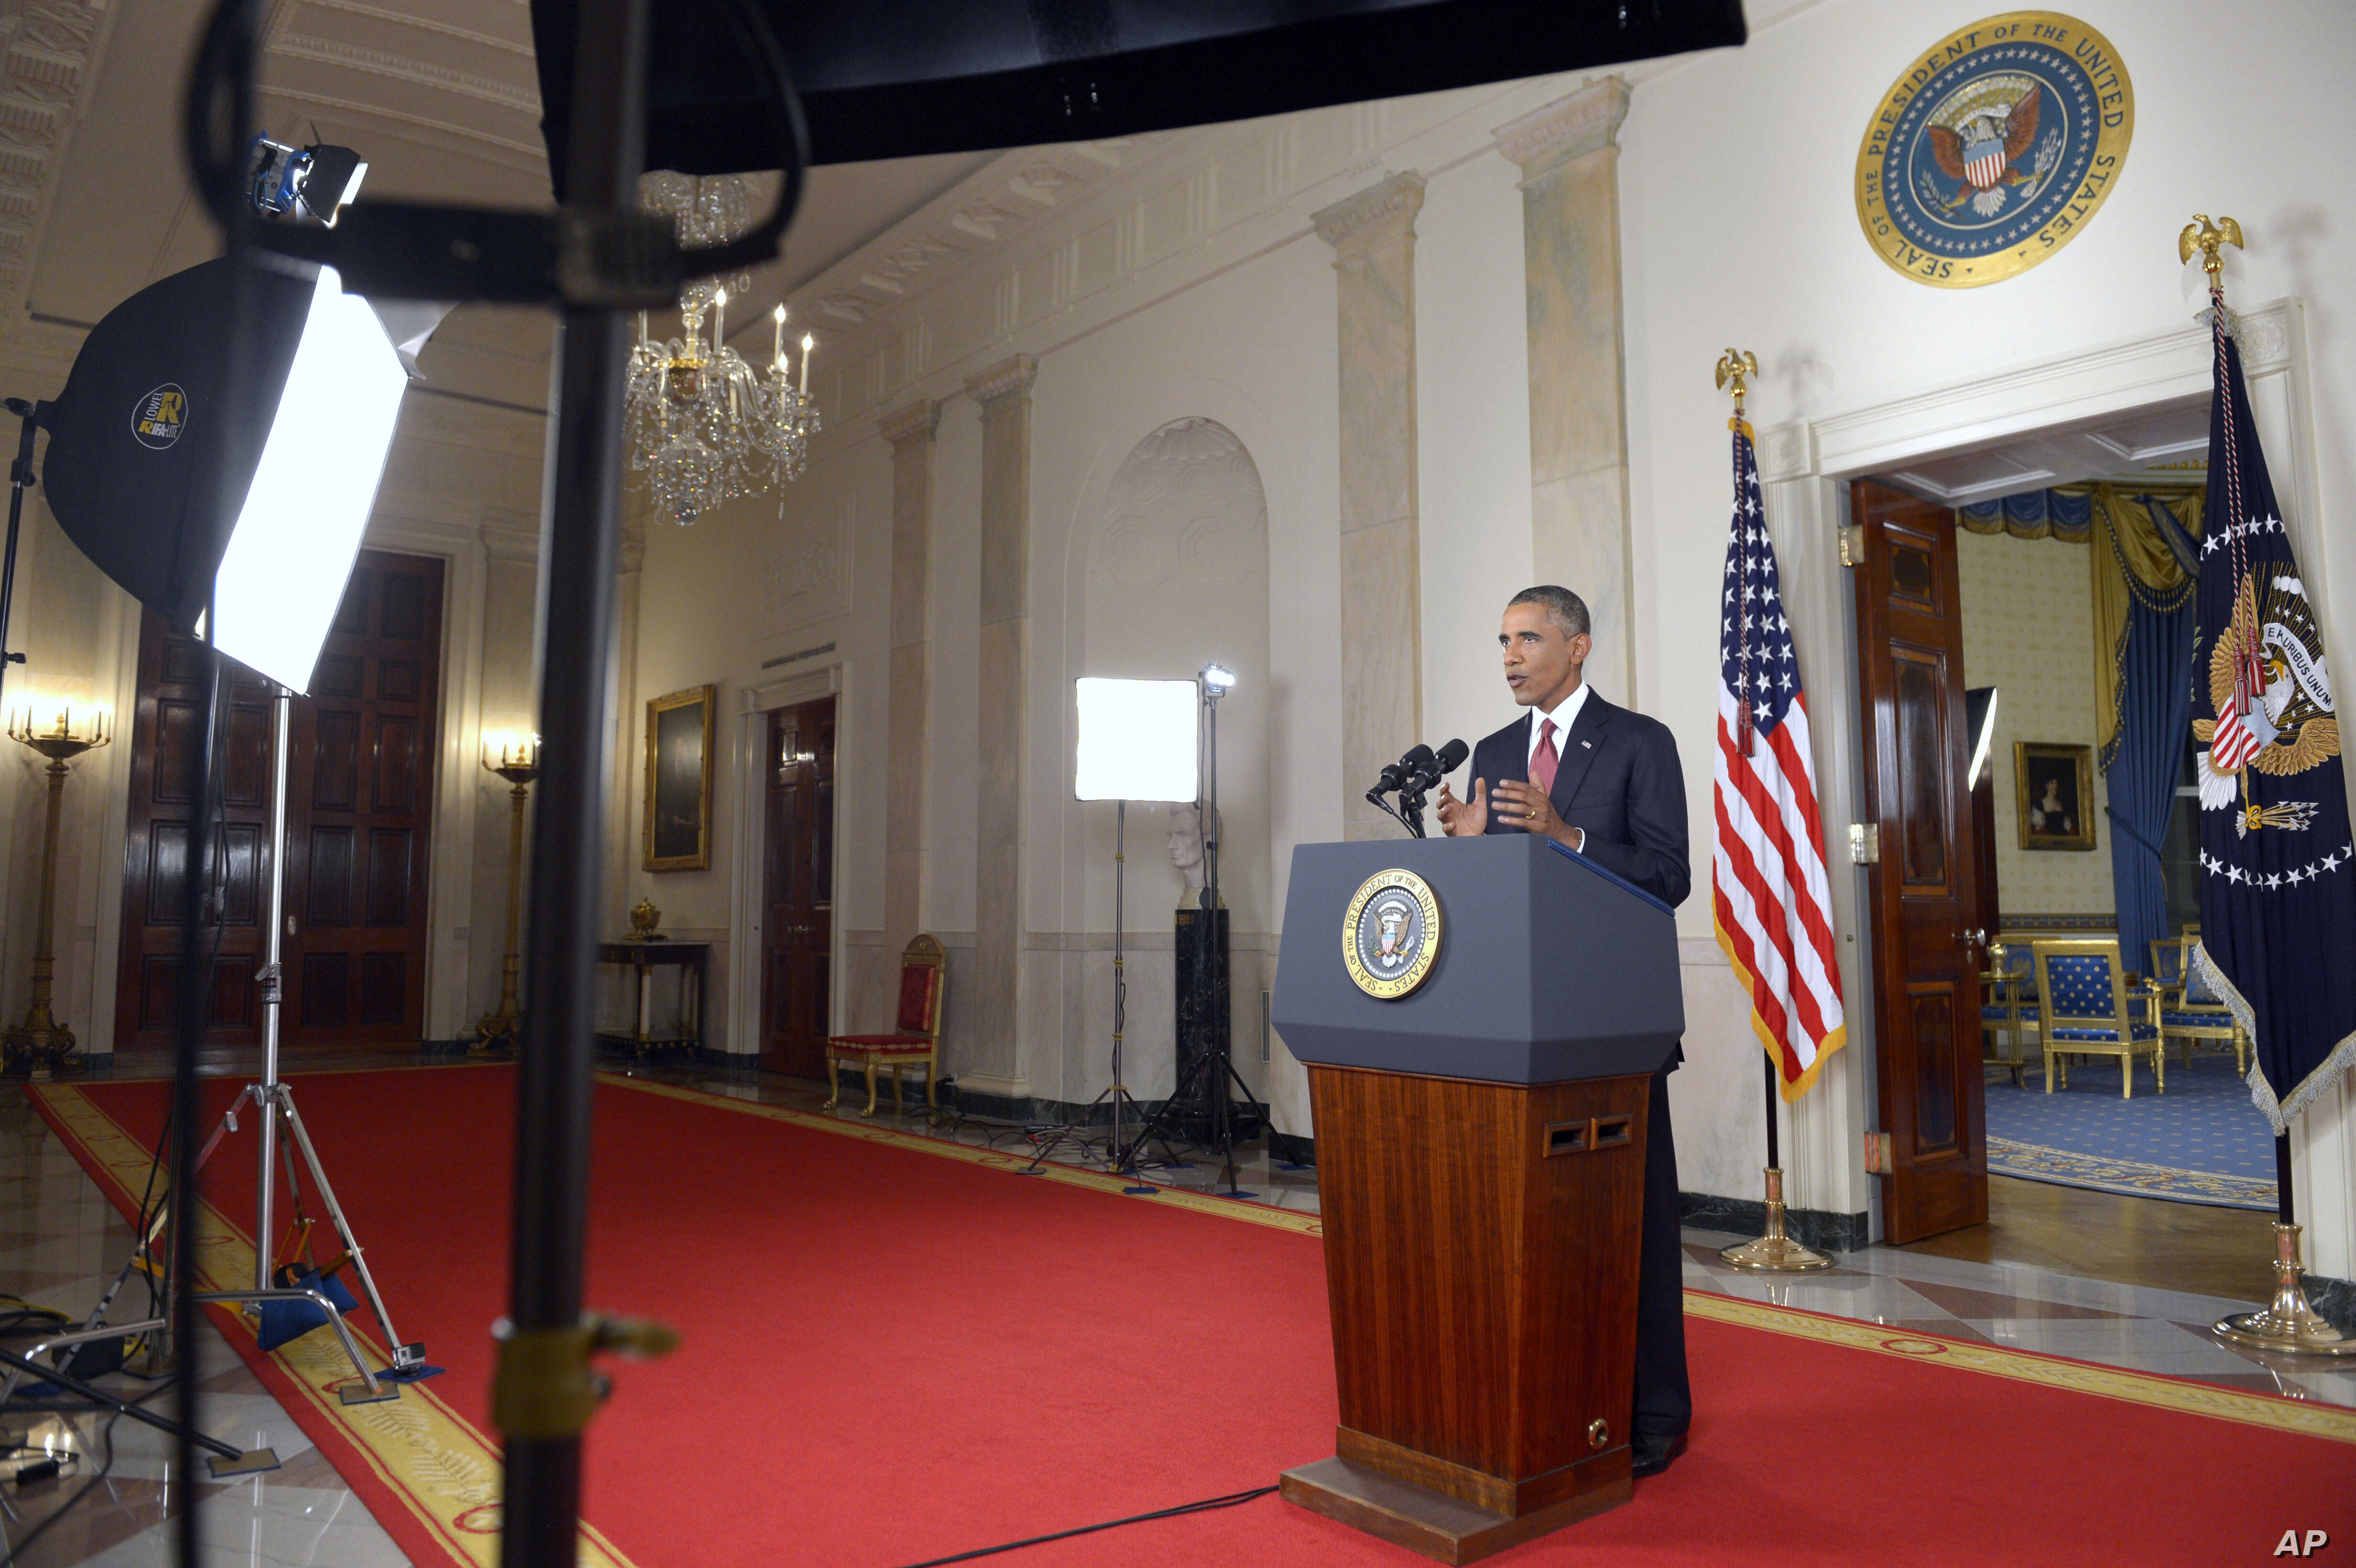 """President Barack Obama addresses the nation from the Cross Hall in the White House in Washington, Wednesday, Sept. 10, 2014. In a major reversal, Obama ordered the United States into a broad military campaign to """"degrade and ultimately destroy"""" milit"""